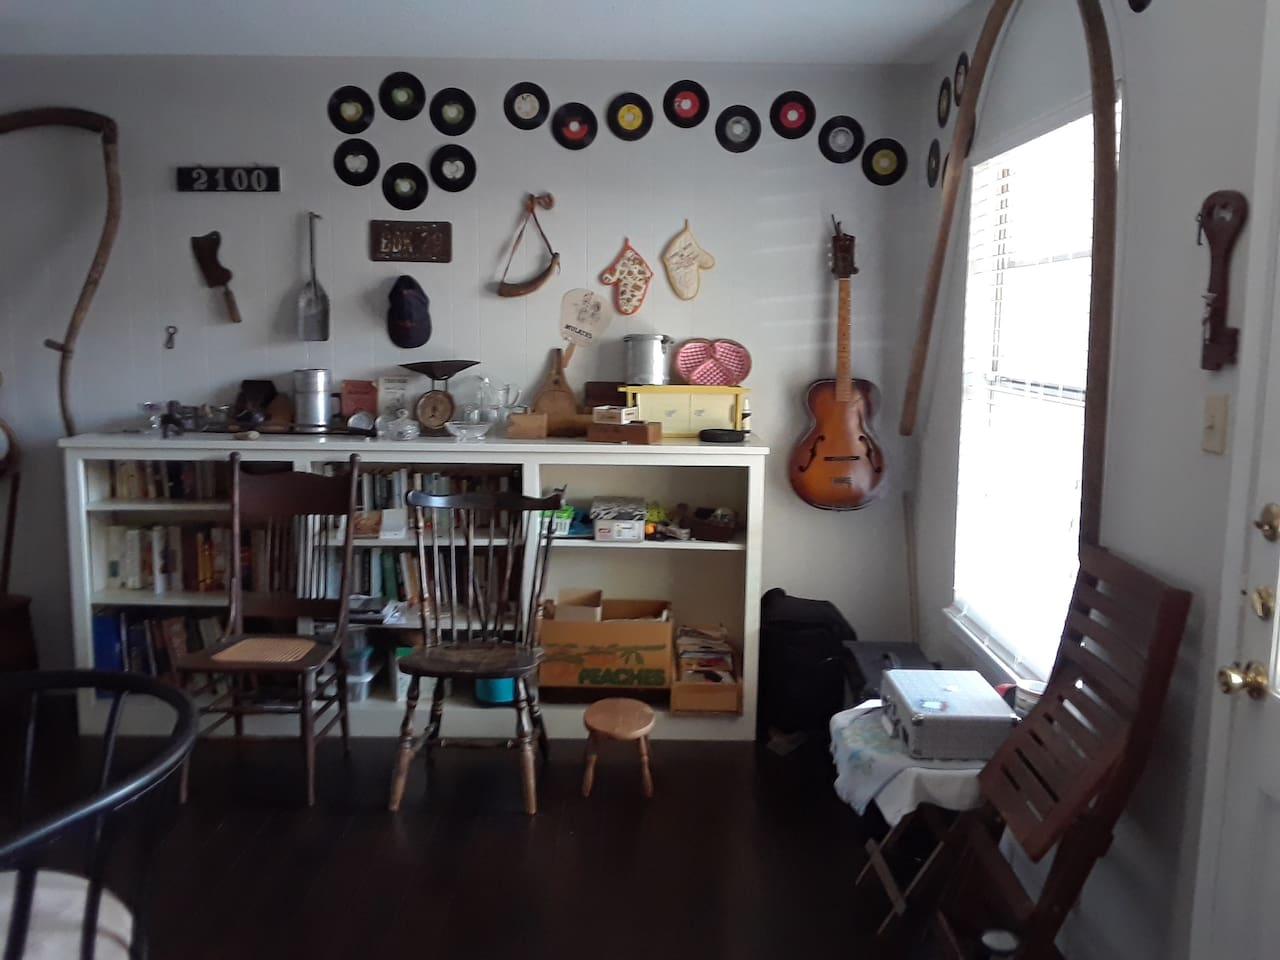 Old Austin antiques, music, library and eclectic vibe